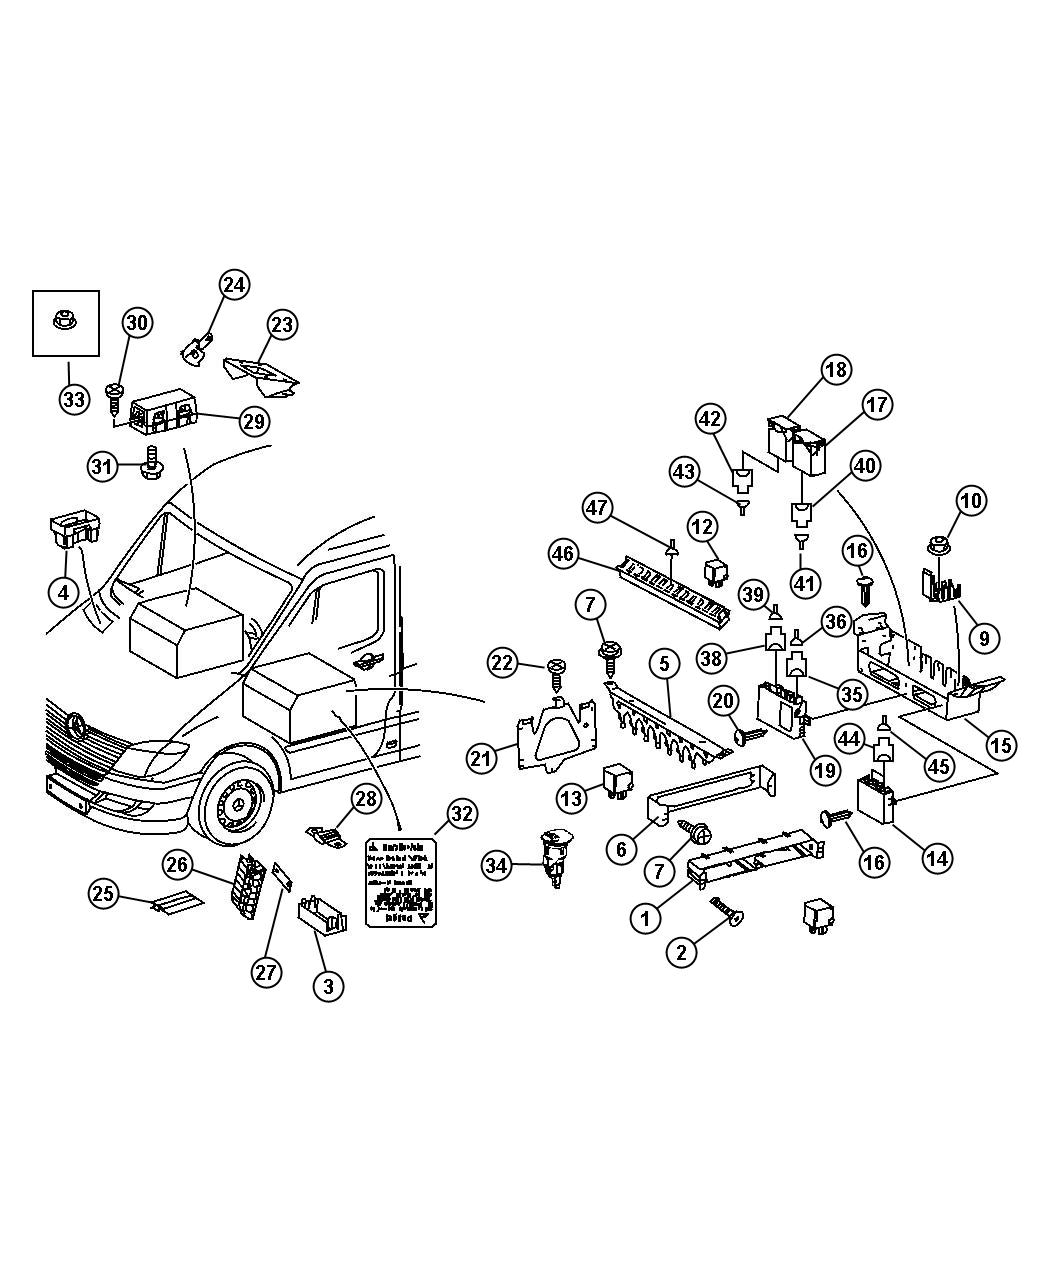 hight resolution of 2007 dodge ram 2500 fuse box location wiring library 2014 mercedes sprinter fuse box diagram